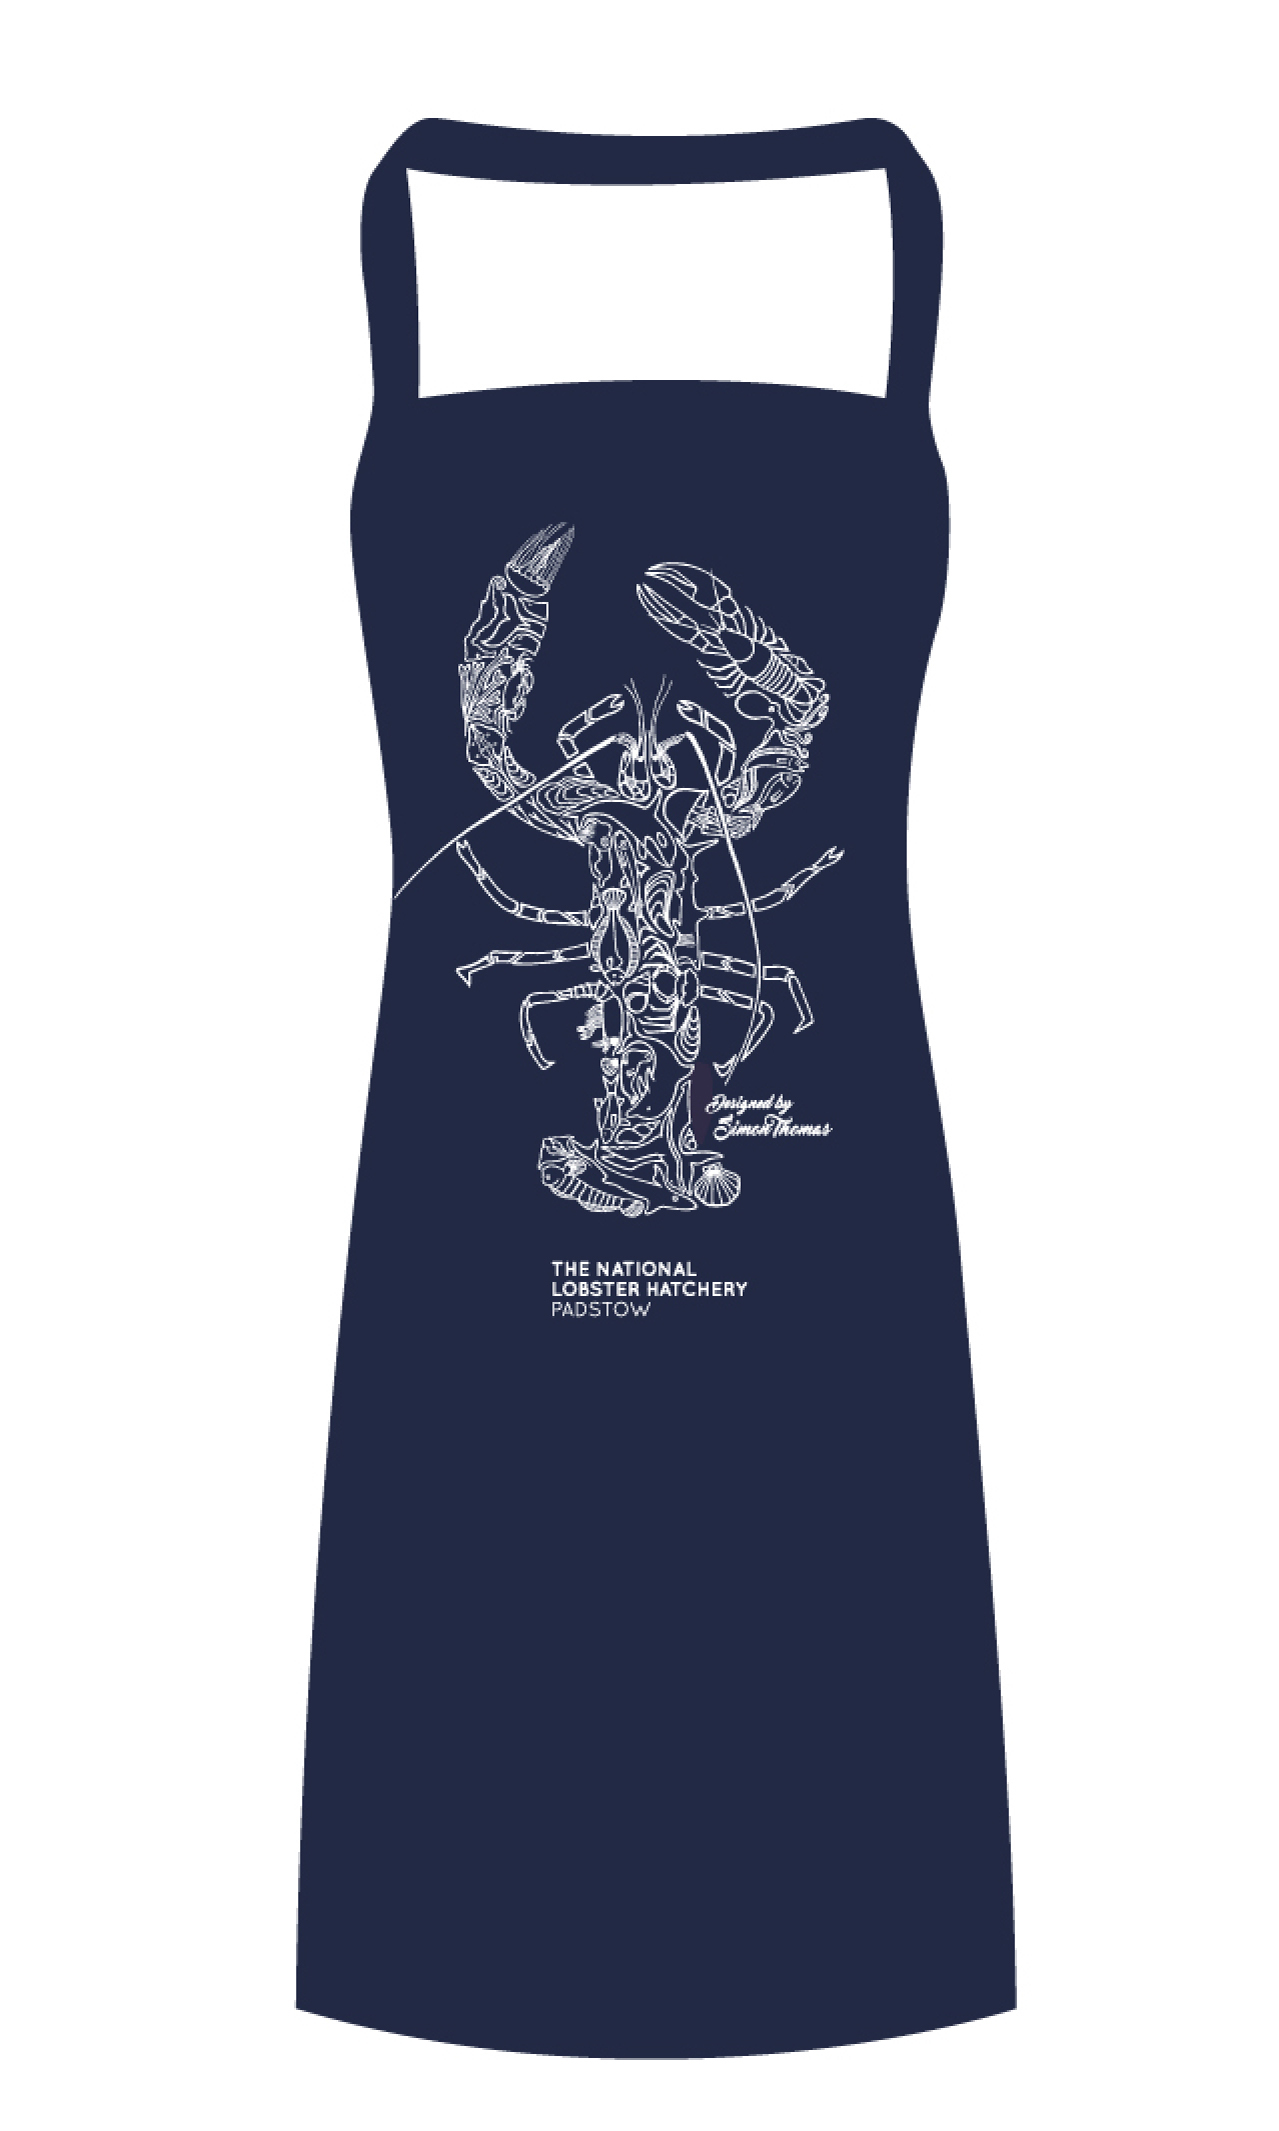 Apron Style Example (Teal Colour in Gift Set)